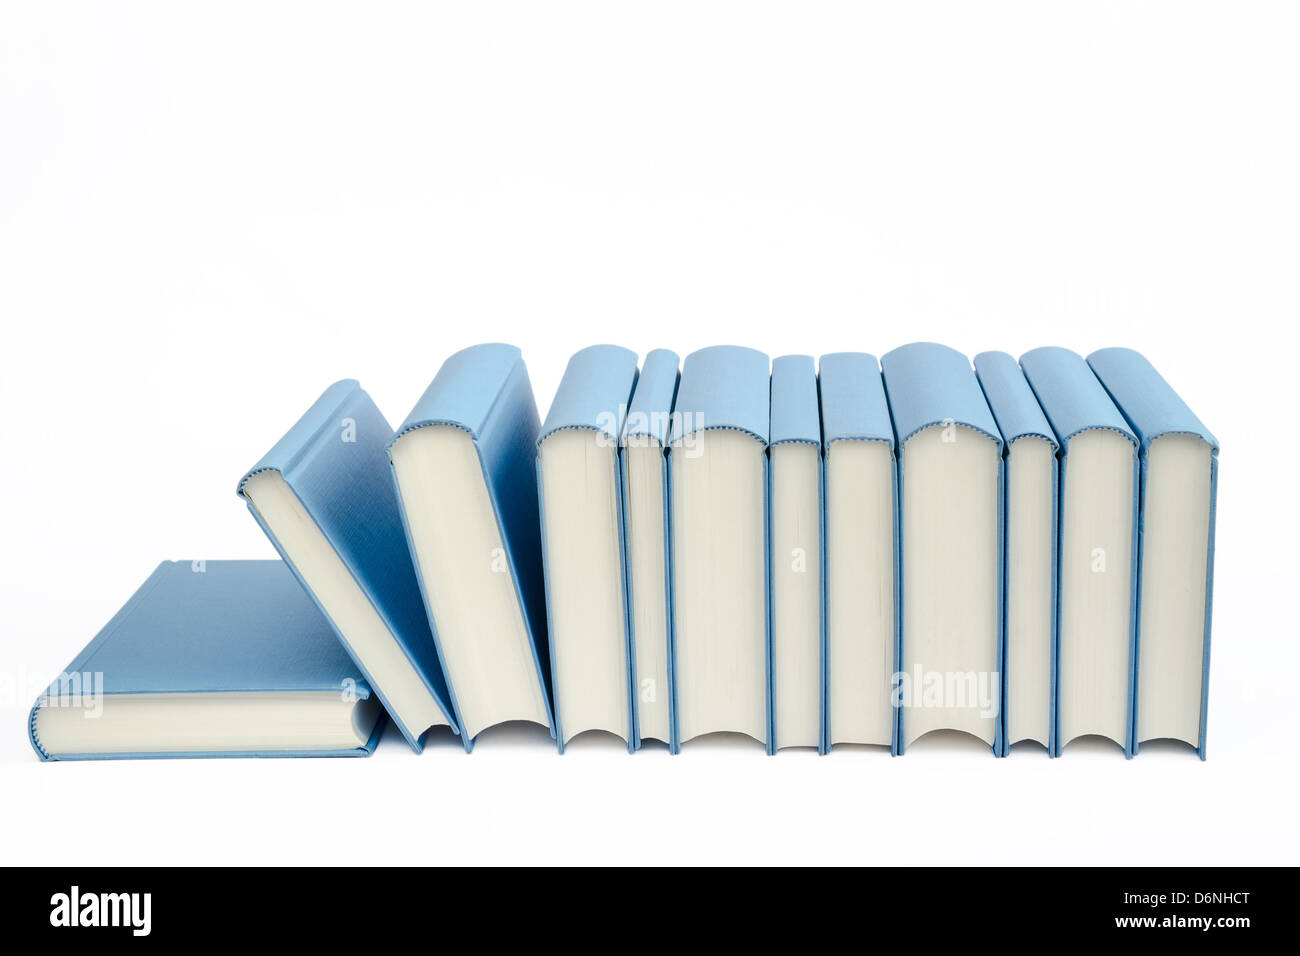 A group of blue books in a row on a white background - Stock Image